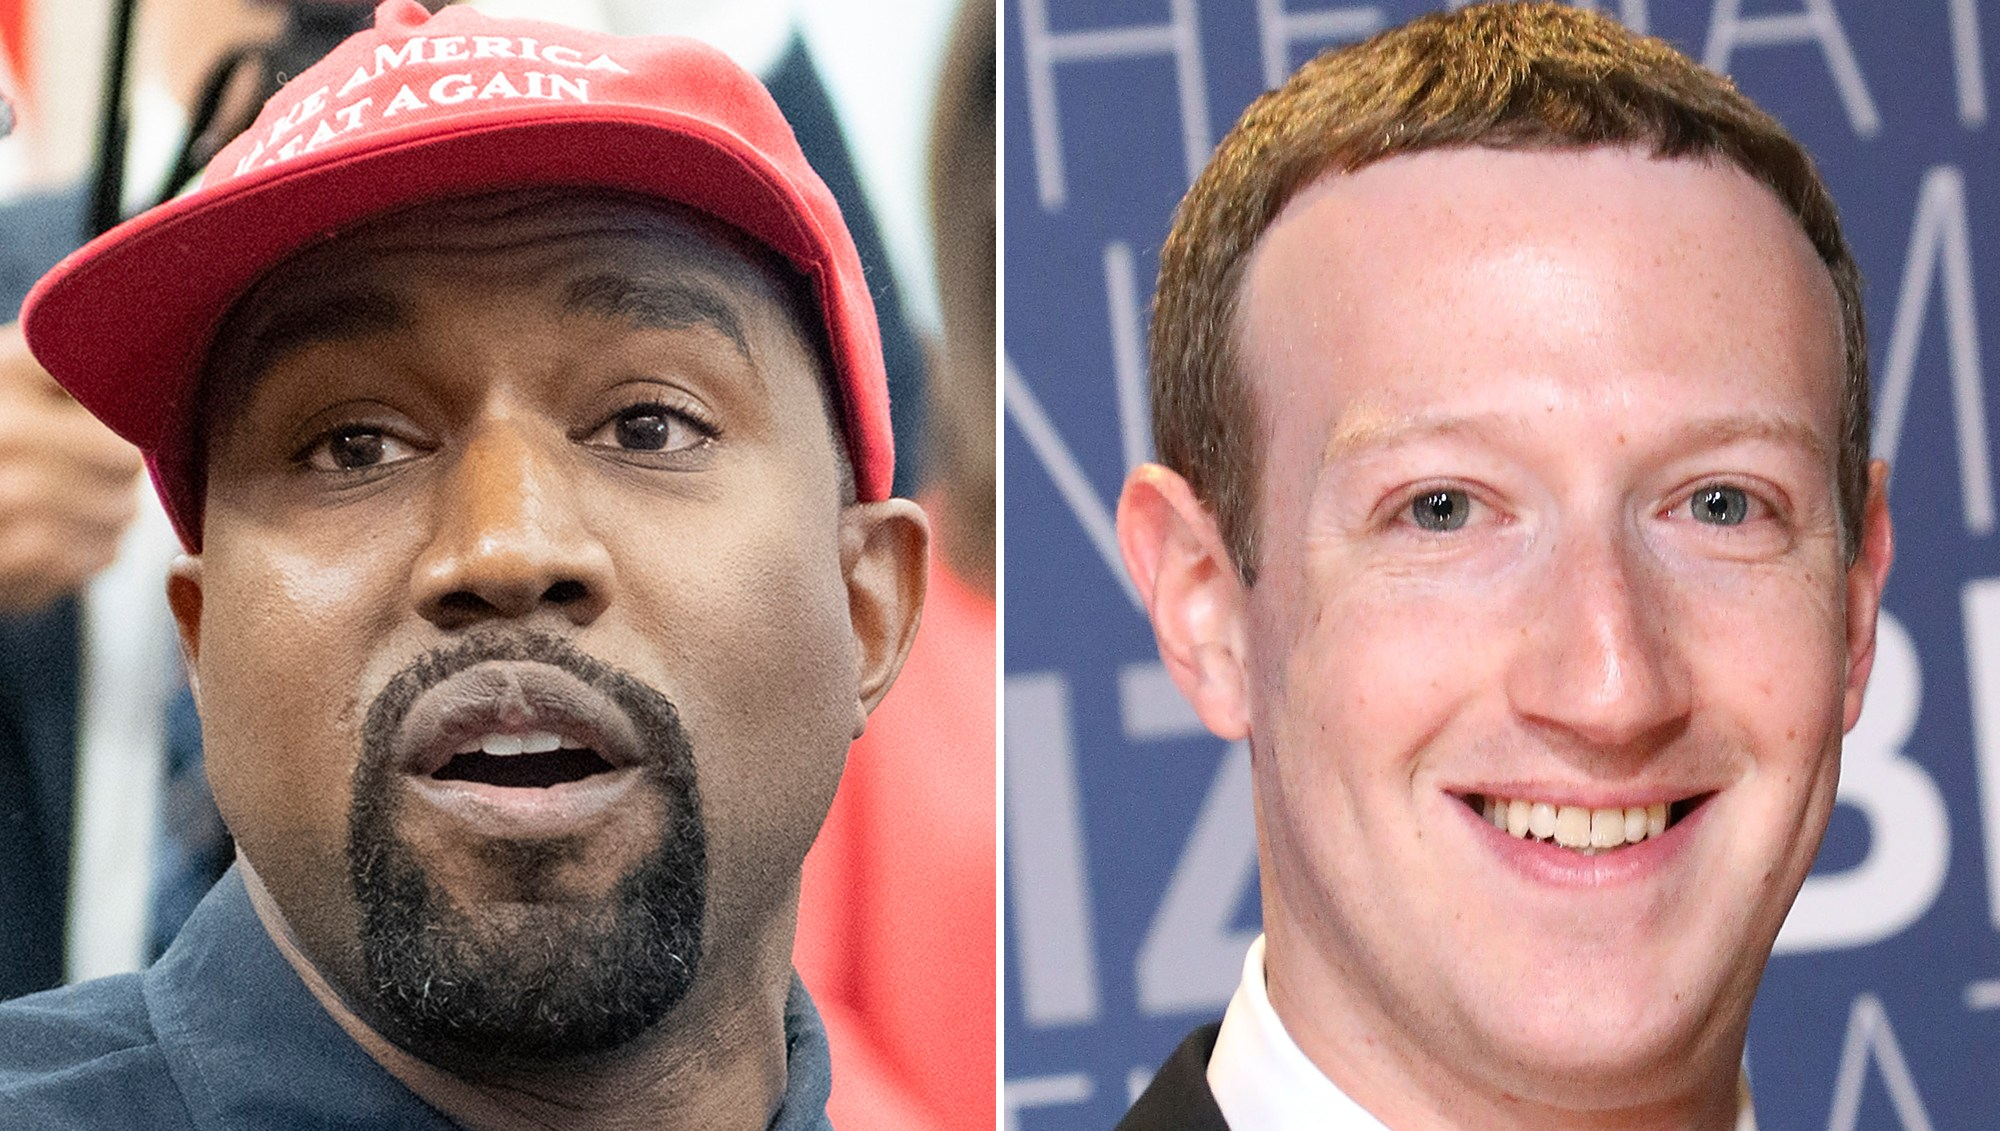 Kanye West Mark Zuckerberg Backstreet Boys